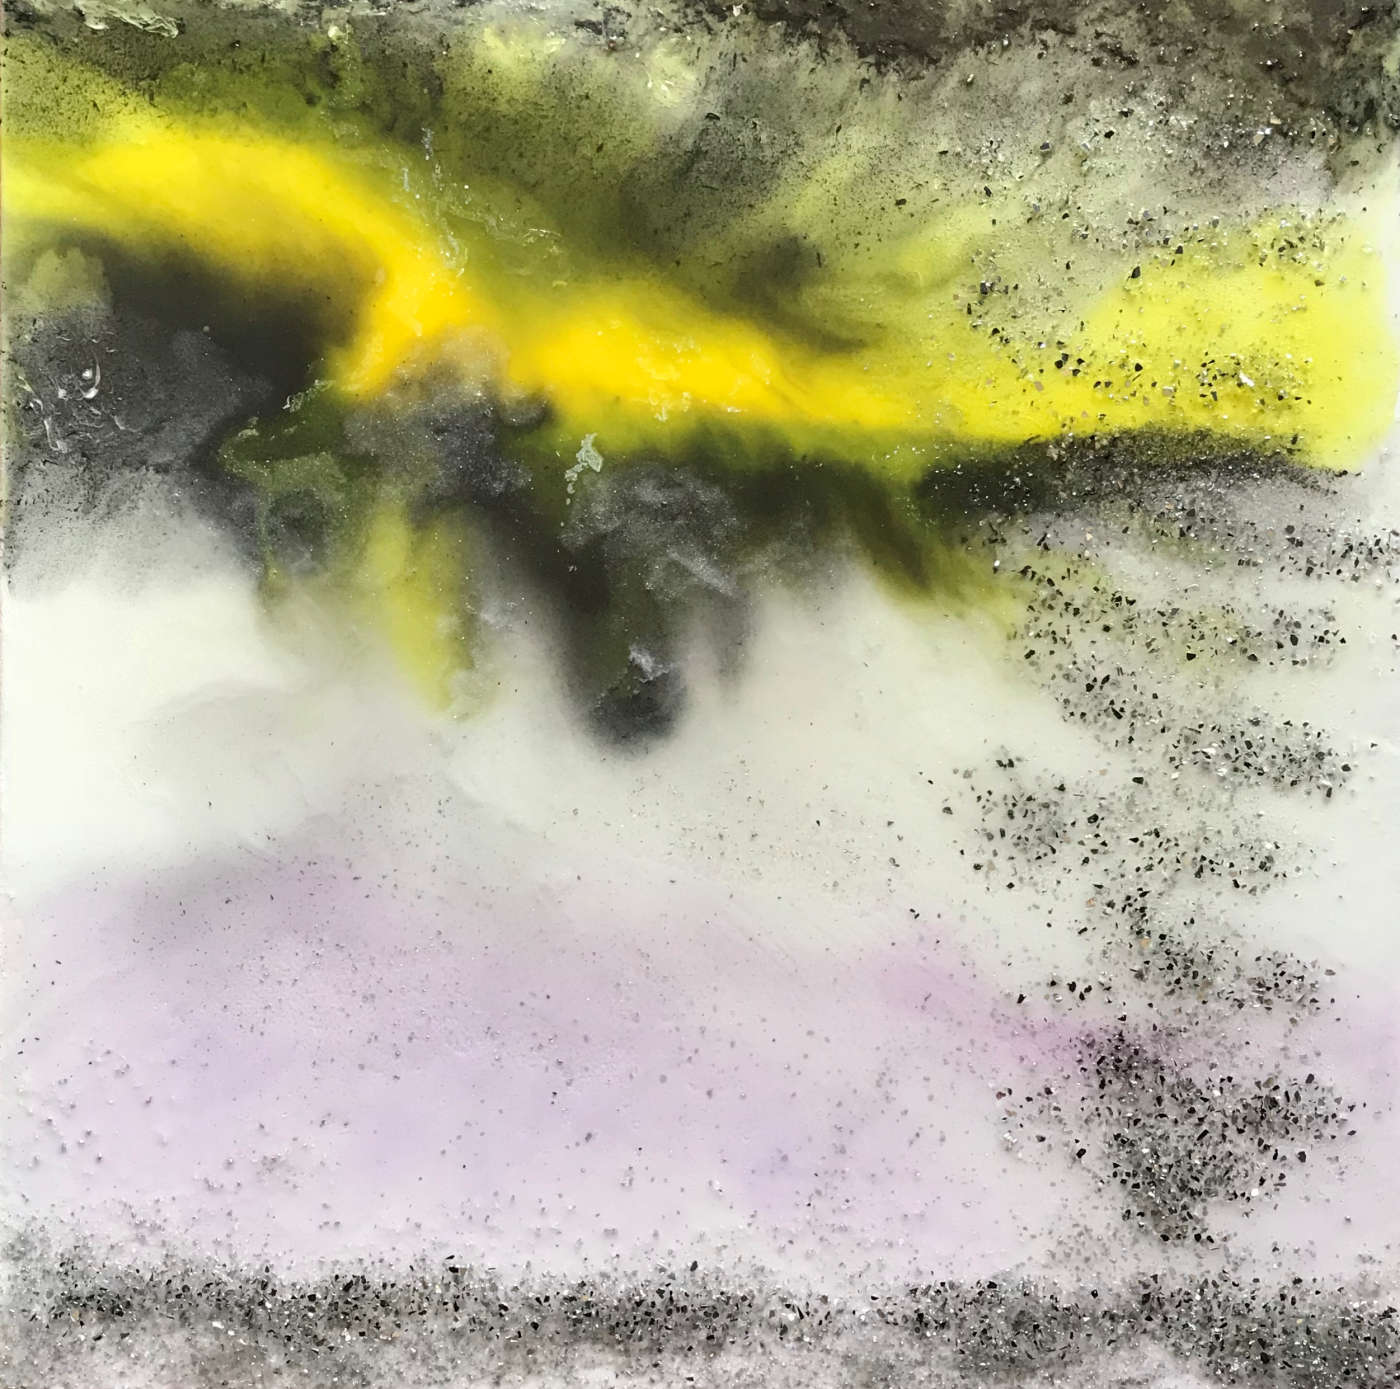 """Tormenta"" – cm 70x70 - resin fluid painting - Quotazione € 850,00"